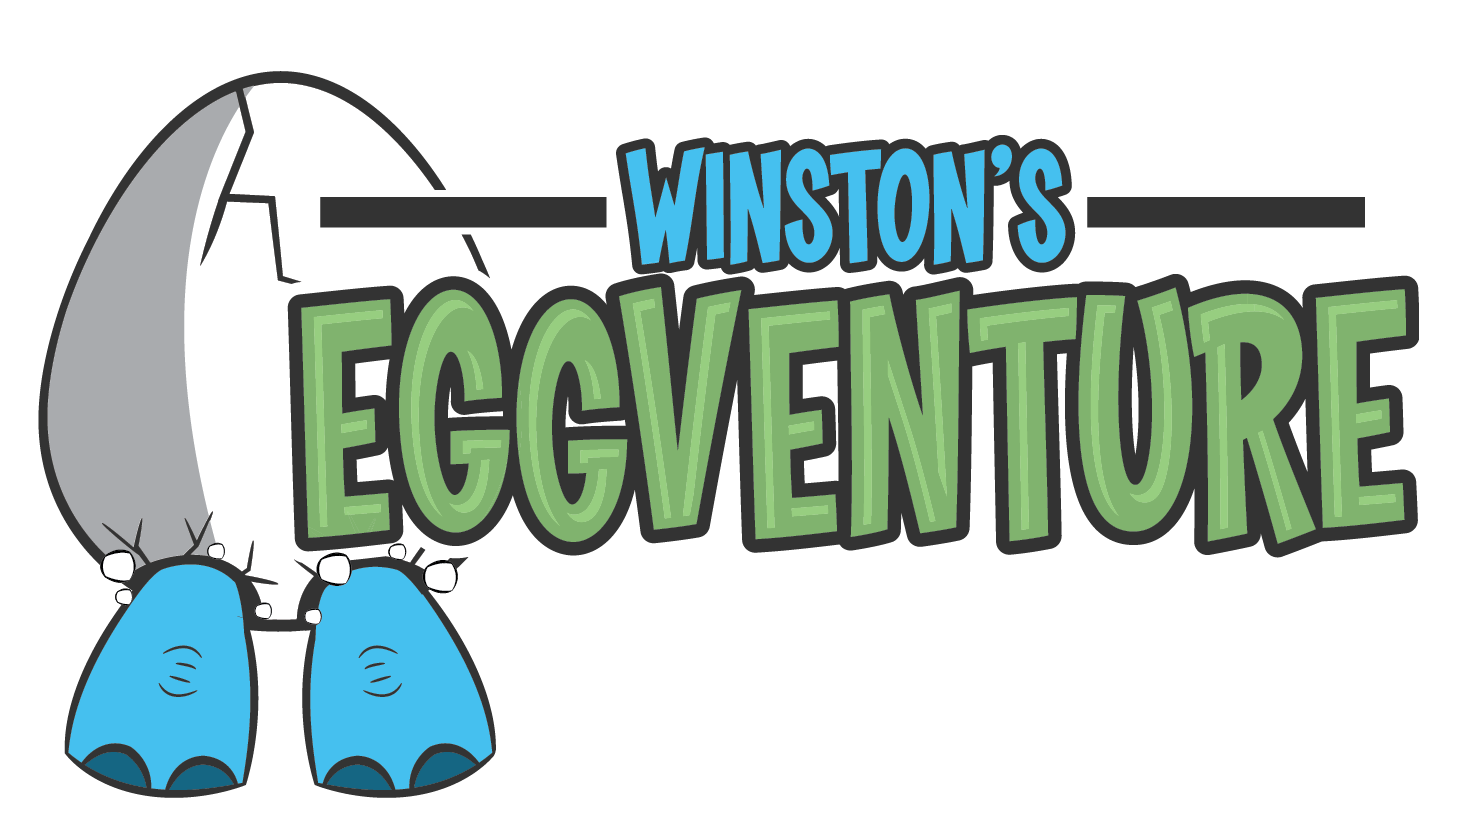 Play Winston's Eggventure (48-Hour Game)